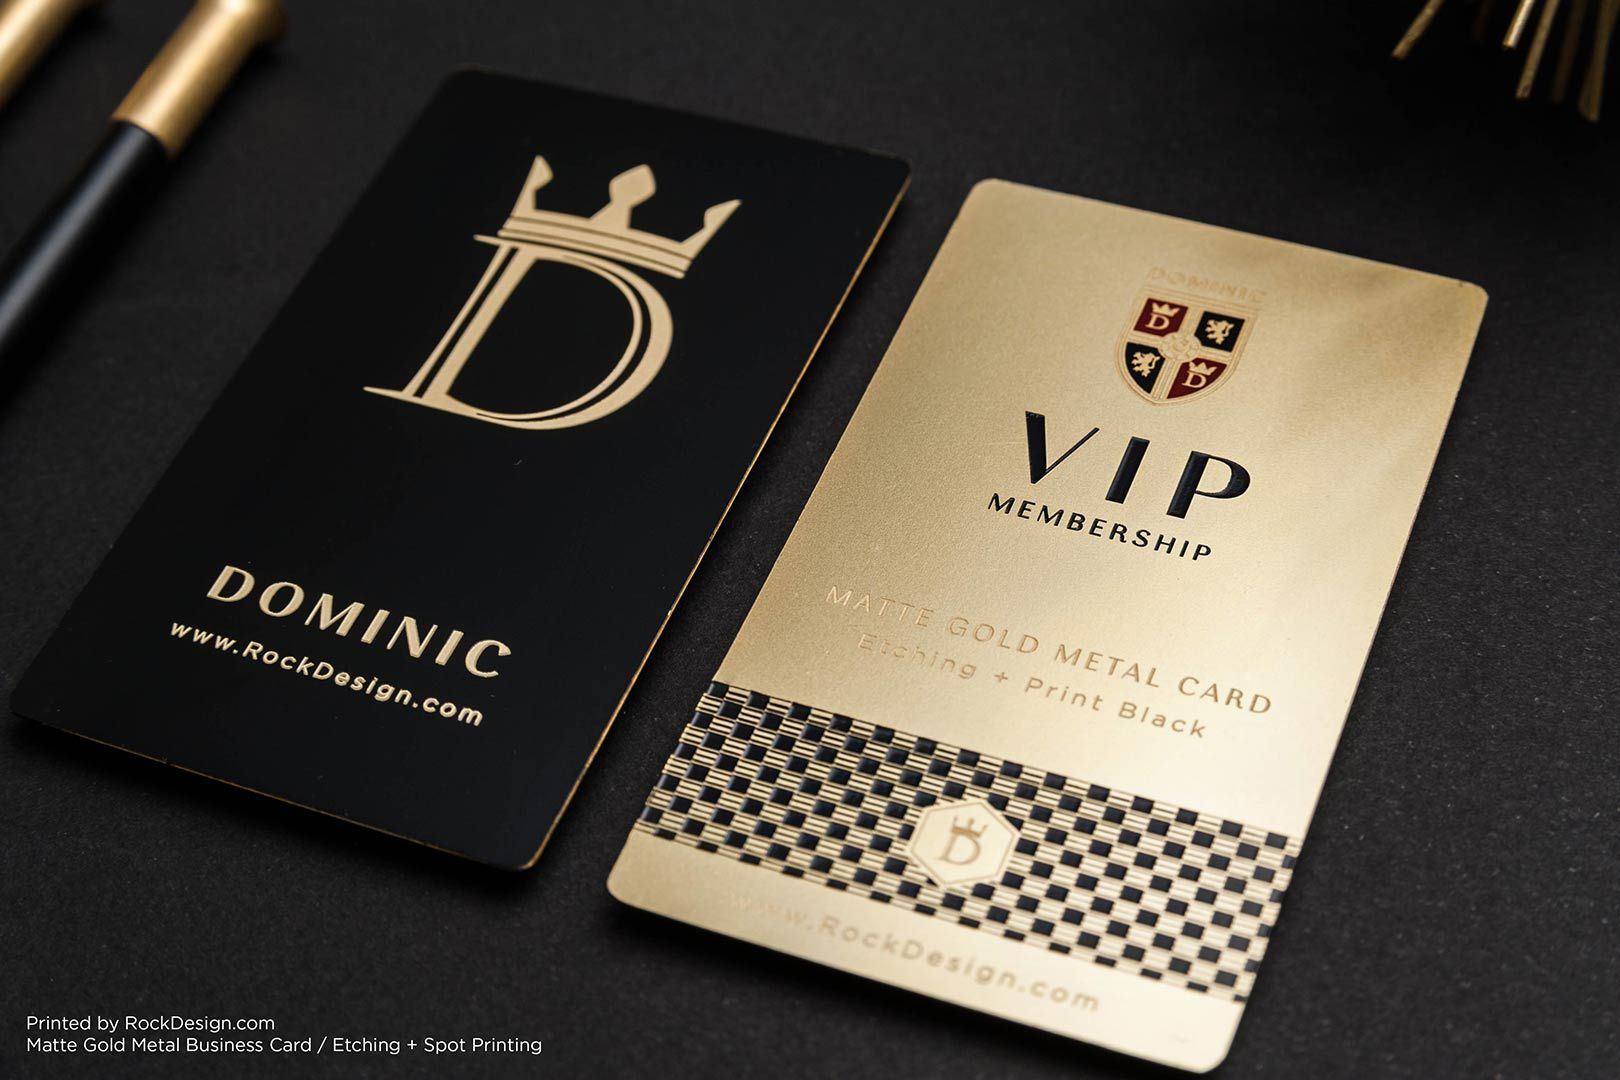 Gold Metal Business Cards | RockDesign Luxury Business Card ...